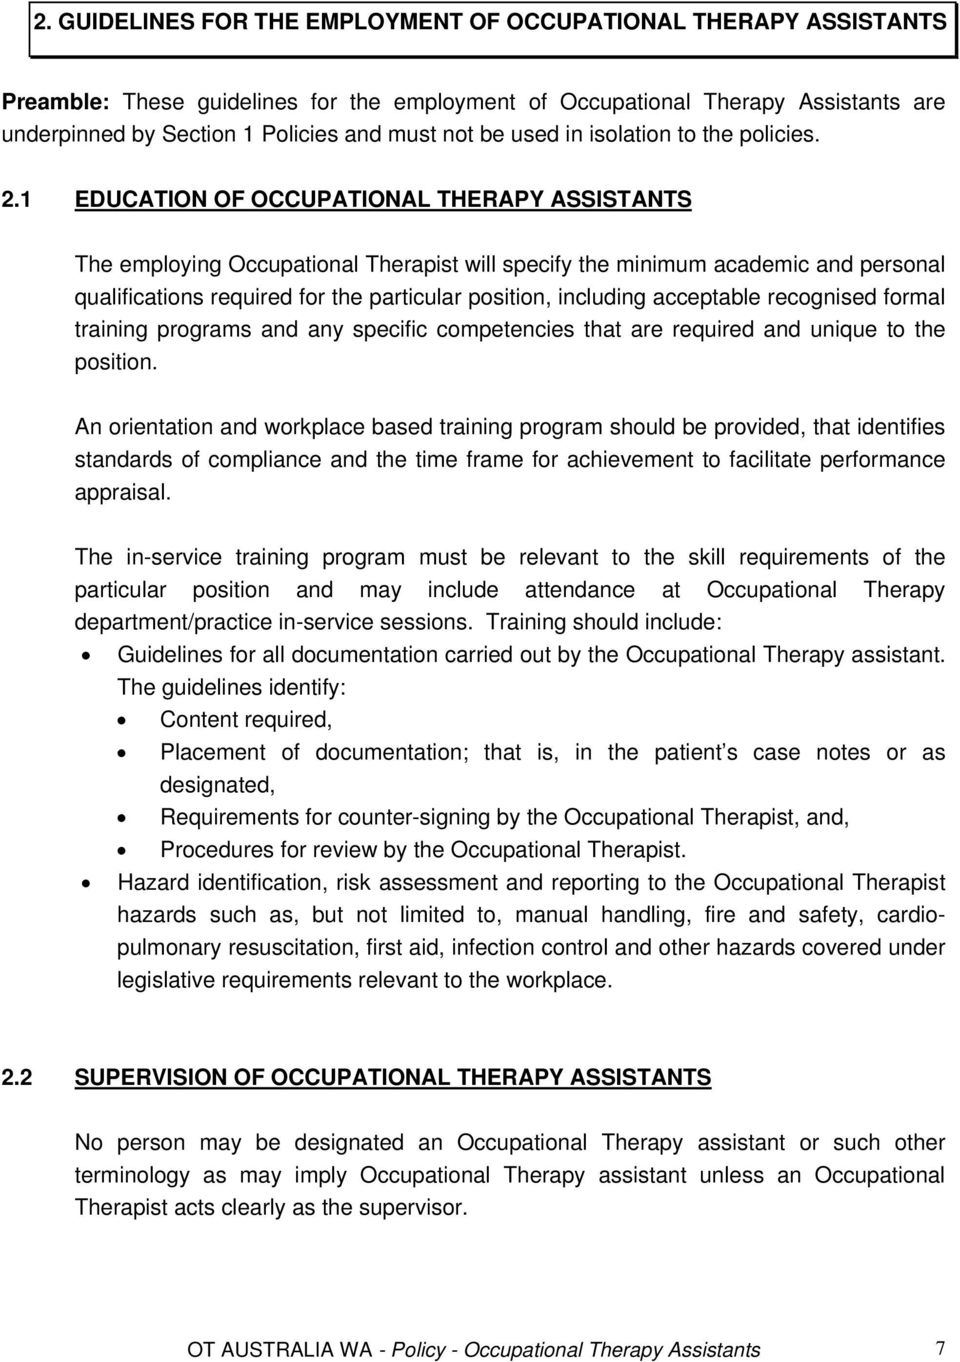 1 EDUCATION OF OCCUPATIONAL THERAPY ASSISTANTS The employing Occupational Therapist will specify the minimum academic and personal qualifications required for the particular position, including